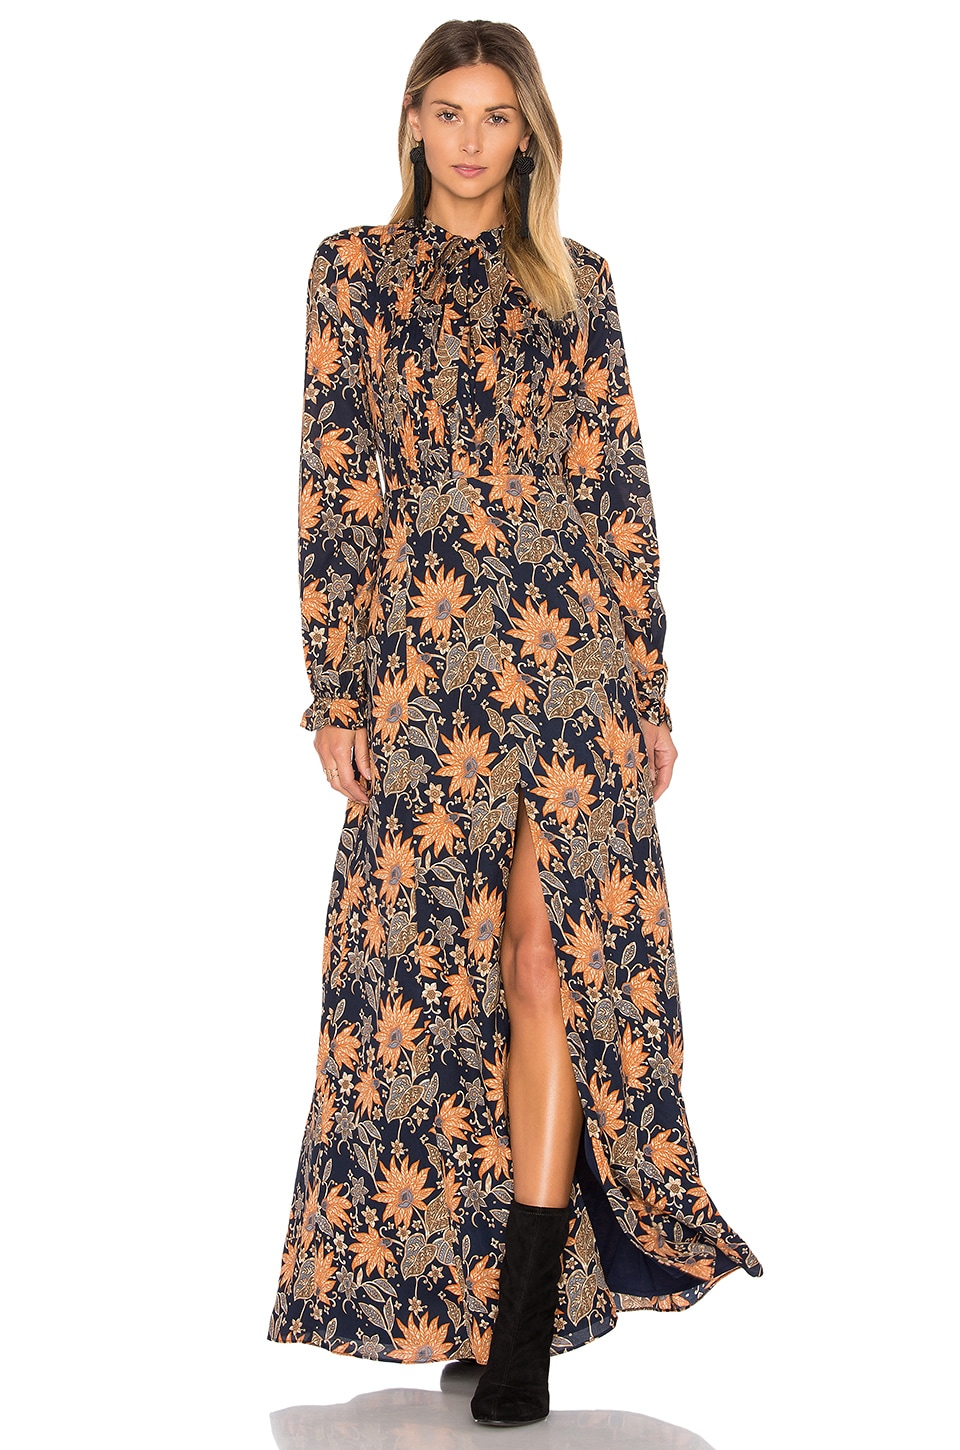 Tia Maxi Dress by Tularosa